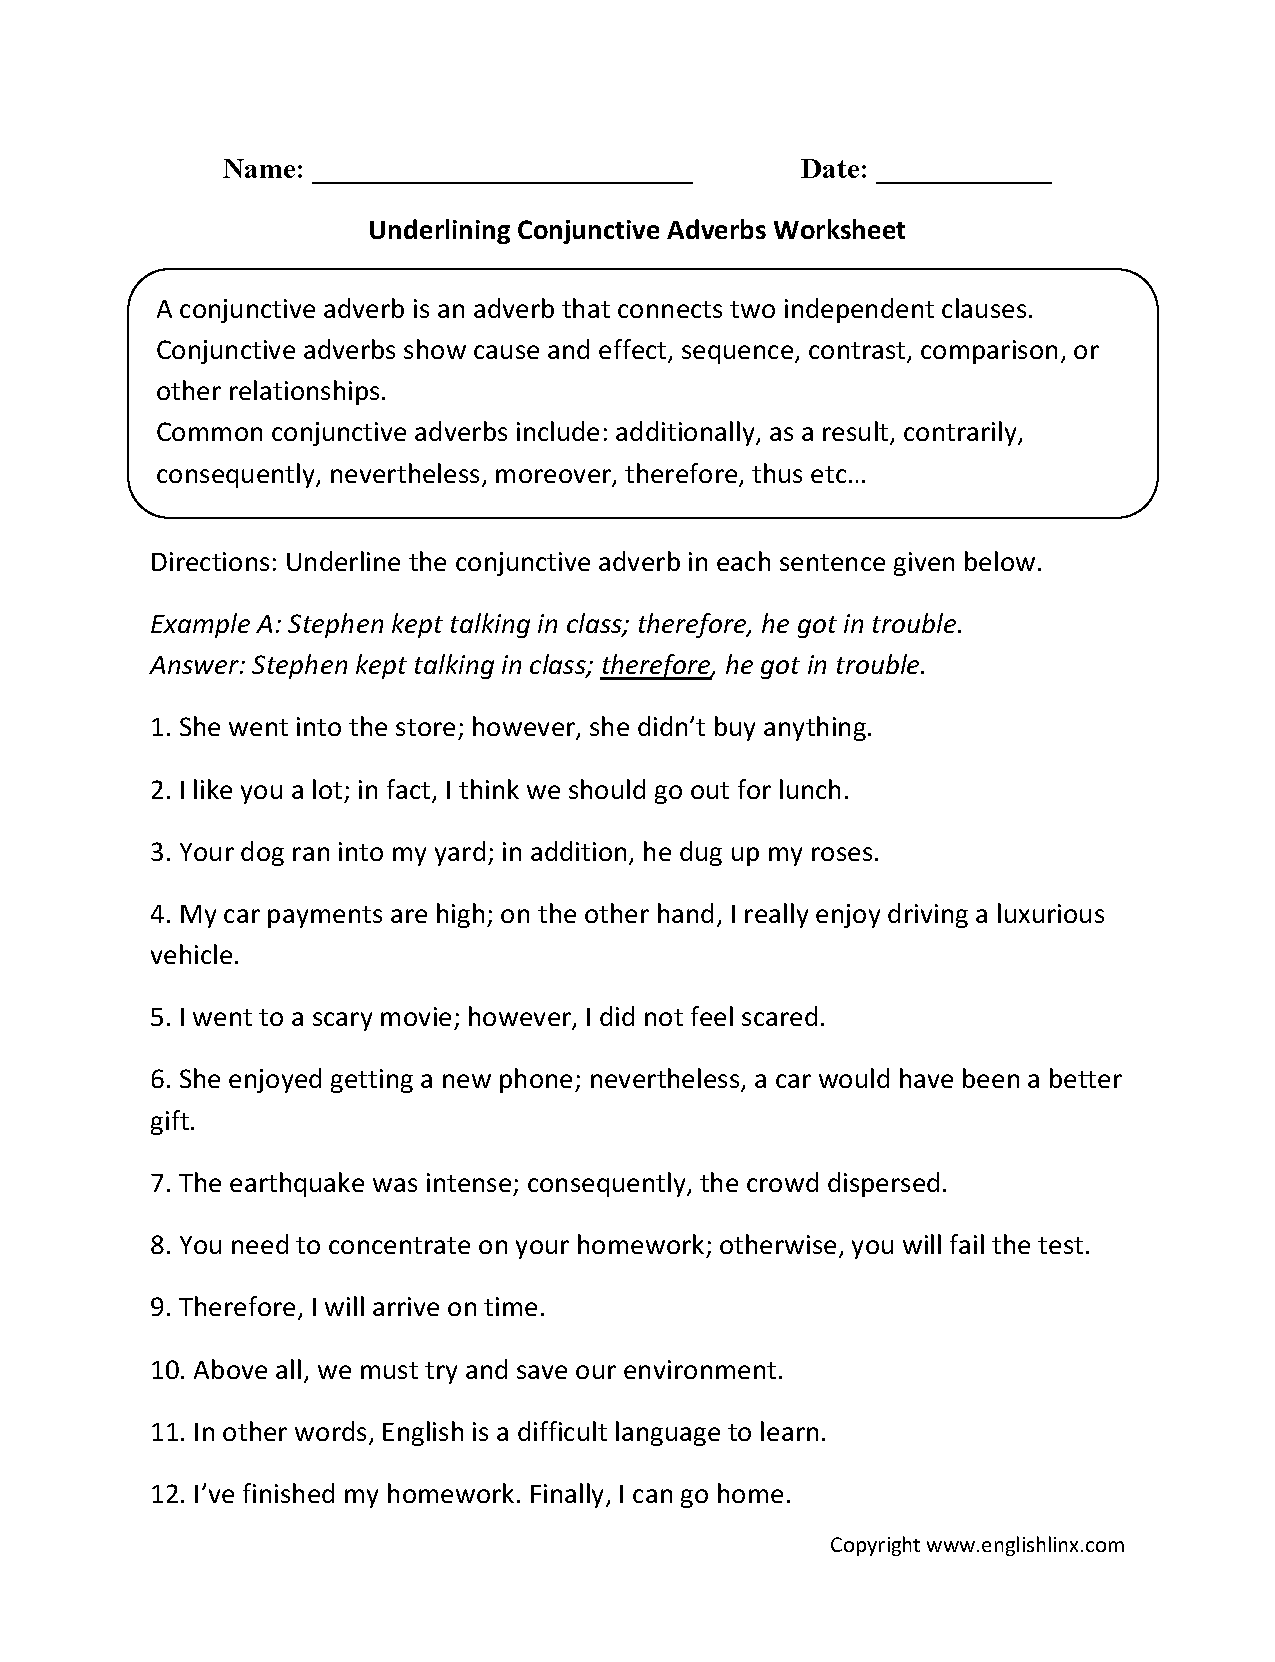 Aldiablosus  Terrific Englishlinxcom  Conjunctions Worksheets With Engaging Worksheet With Amazing Residential Electrical Load Worksheet Also Printable Distributive Property Worksheets In Addition Free Easter Worksheets For First Grade And Printable Multiplication Facts Worksheets As Well As Folktale Worksheet Additionally First Grade Adding Worksheets From Englishlinxcom With Aldiablosus  Engaging Englishlinxcom  Conjunctions Worksheets With Amazing Worksheet And Terrific Residential Electrical Load Worksheet Also Printable Distributive Property Worksheets In Addition Free Easter Worksheets For First Grade From Englishlinxcom